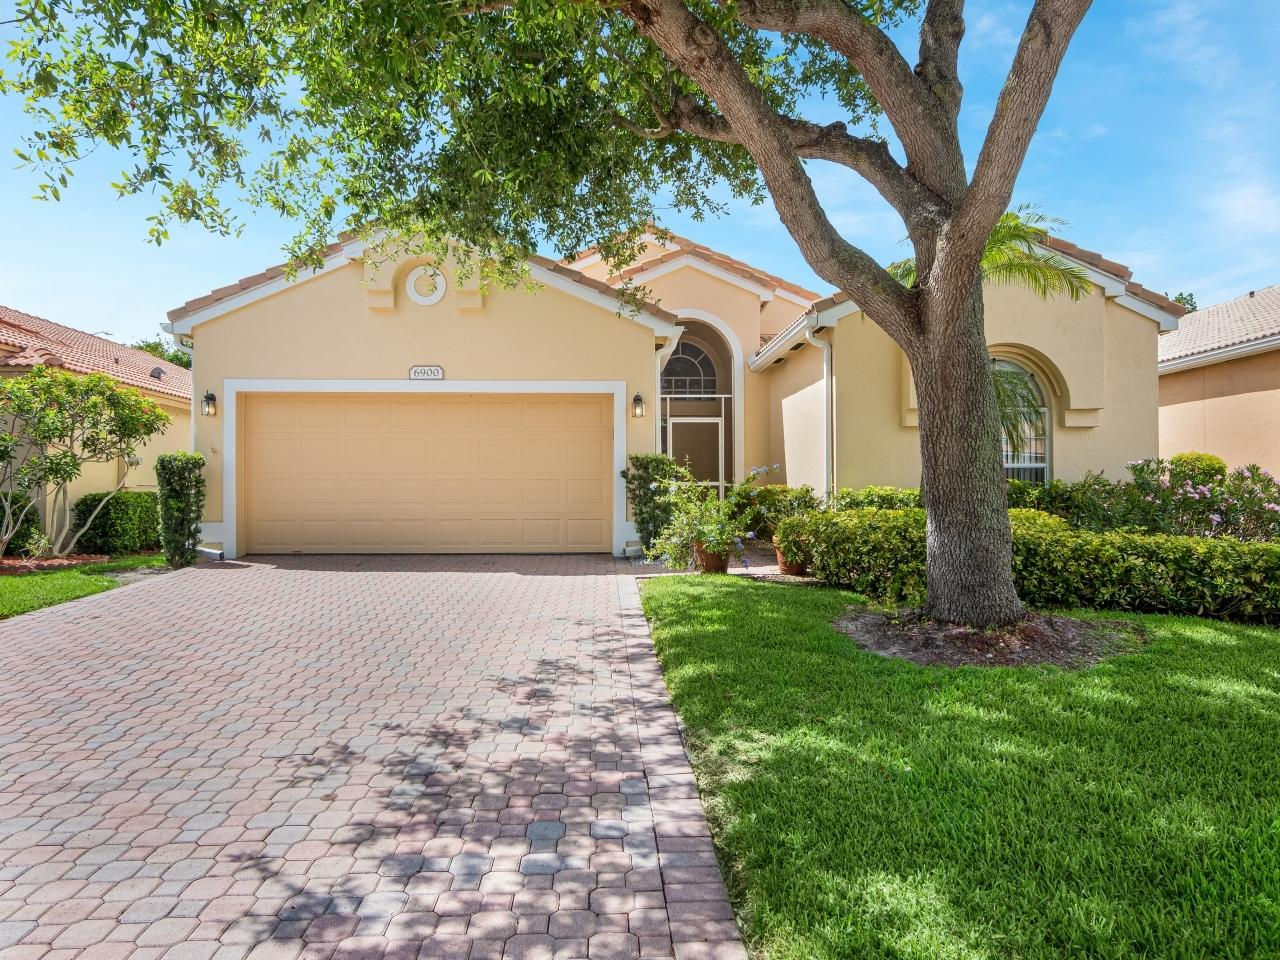 6900  Camille Street  For Sale 10715210, FL